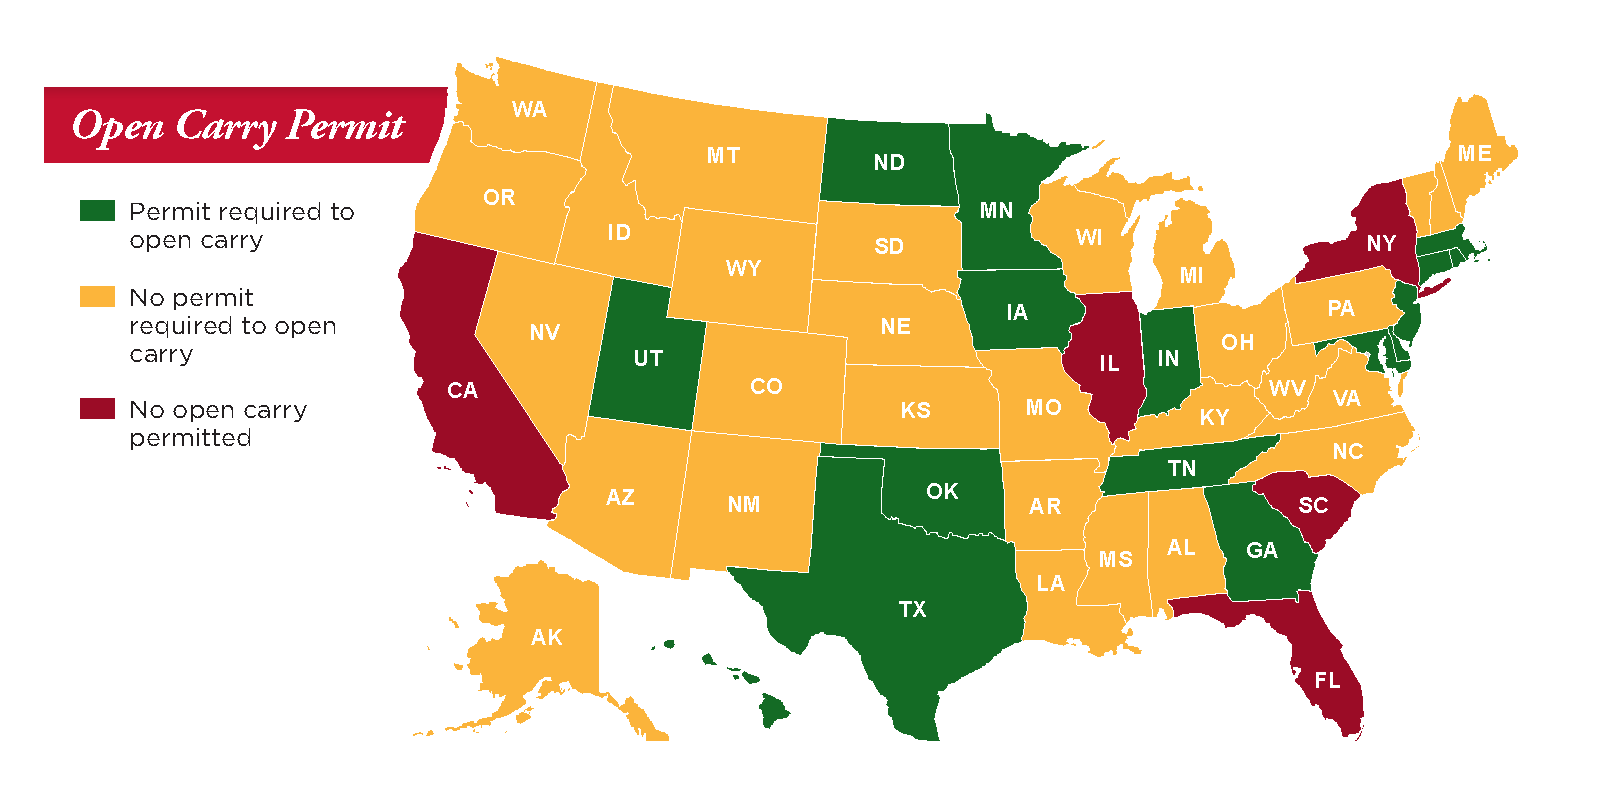 Pistol Permit Open Carry Map